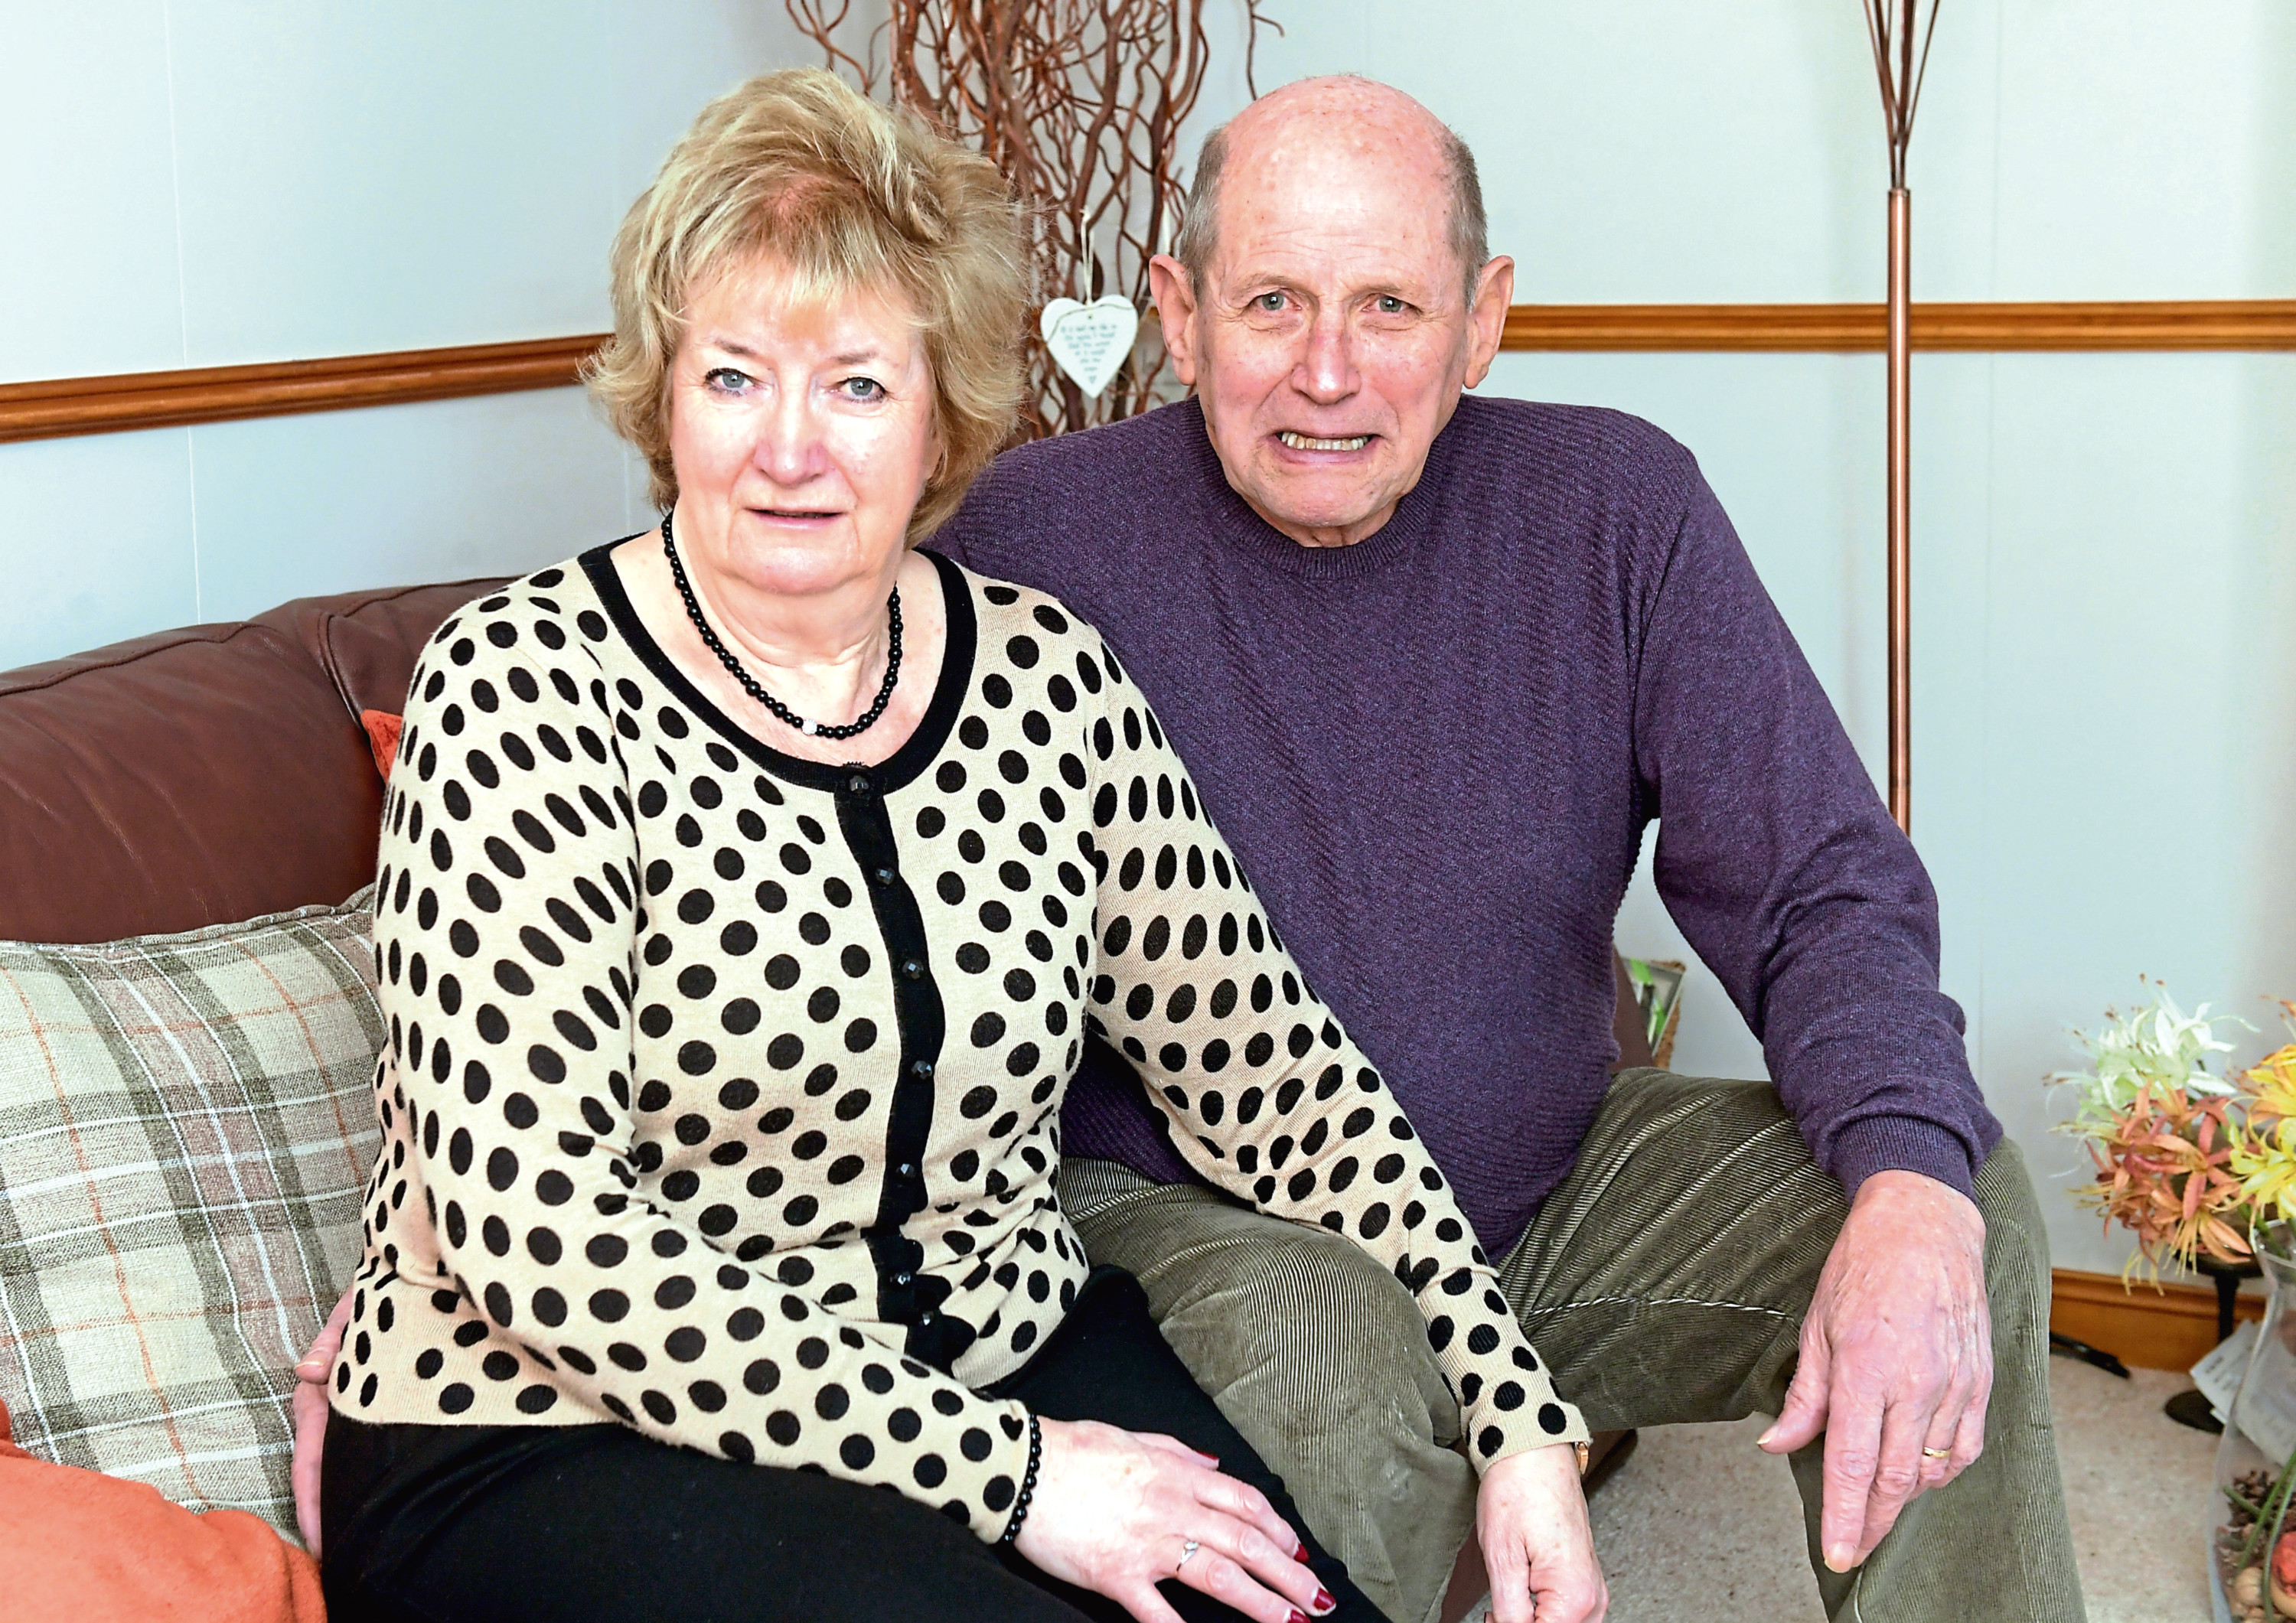 Ann and James Auld from Kemnay, who reunited and fell in love after 61 years apart